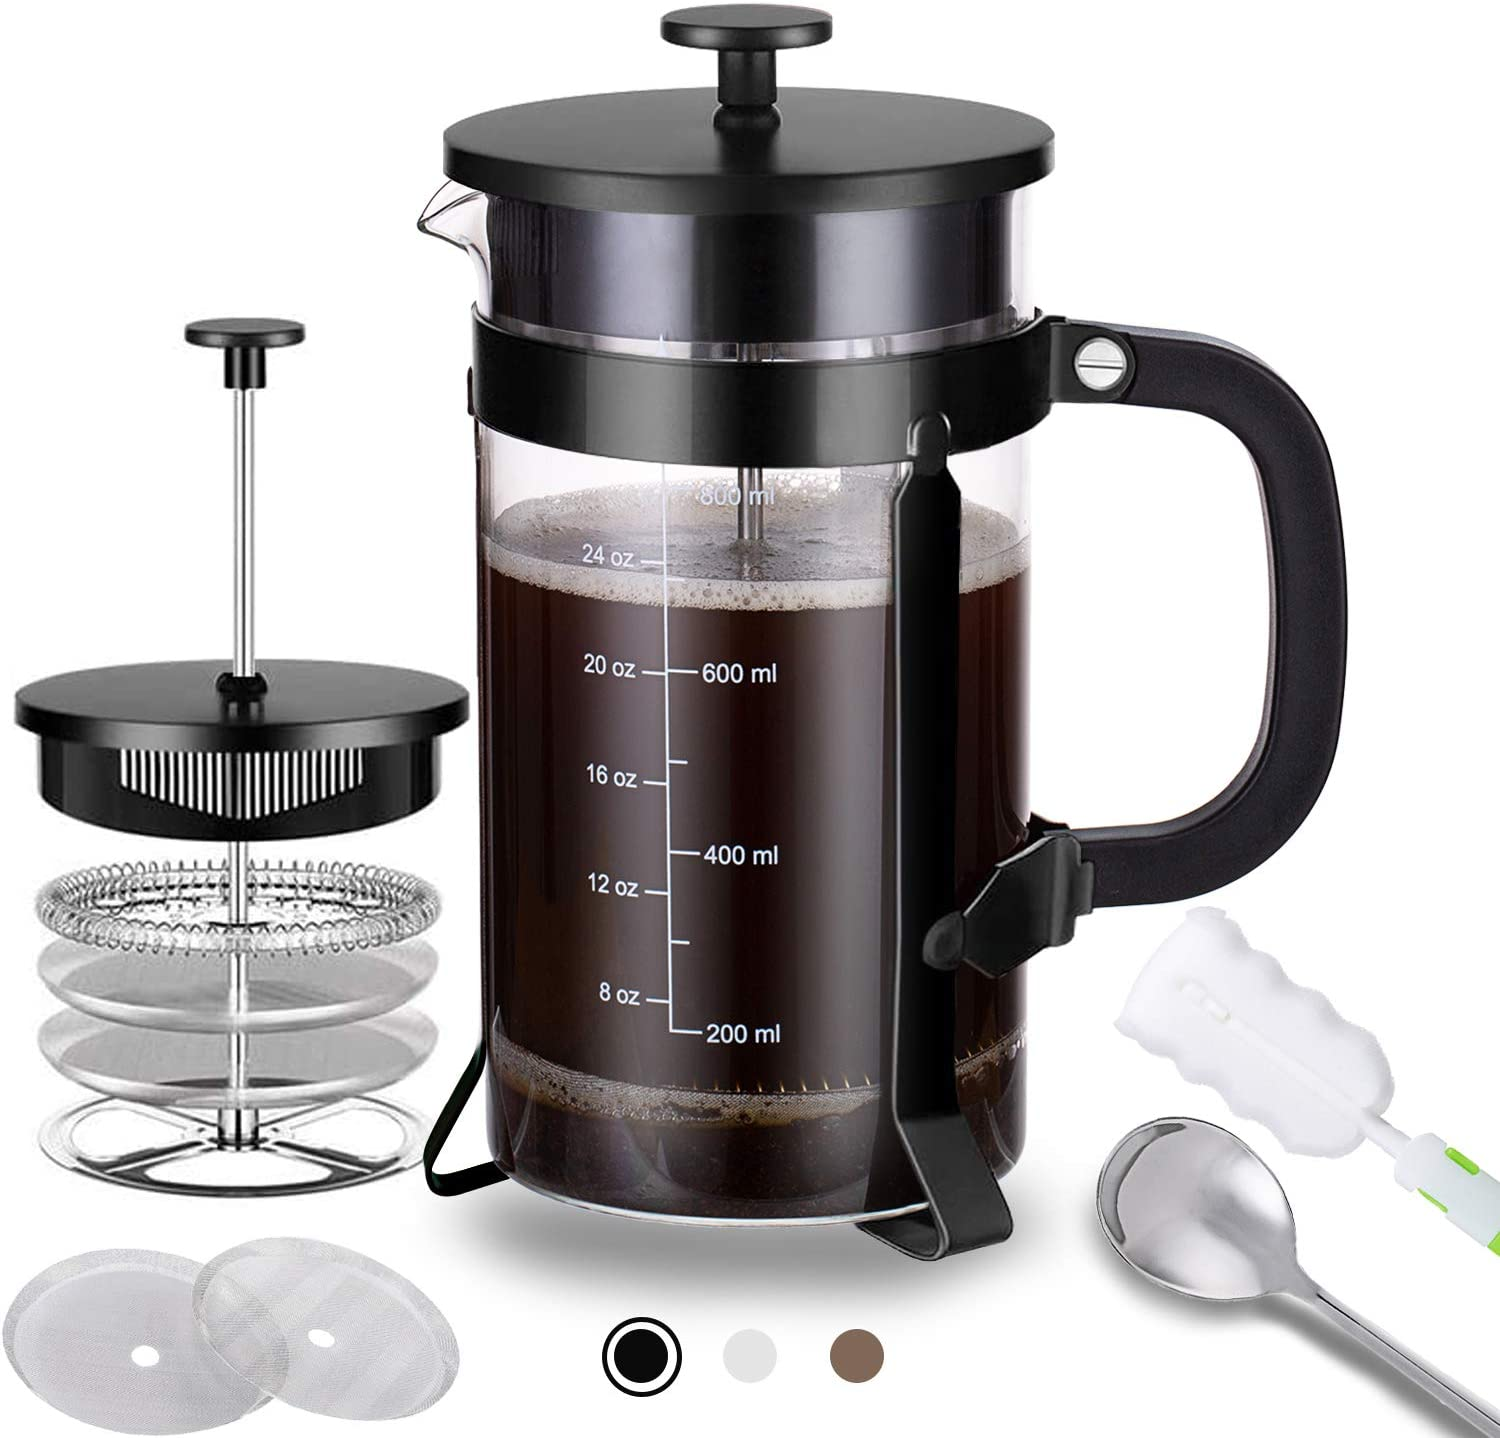 French Press Coffee Maker with 4 Filters - 304 Durable Stainless Steel - Heat Resistant Borosilicate Glass Coffee Pot Percolator, Single Serving Coffee Maker, 34 oz, Black